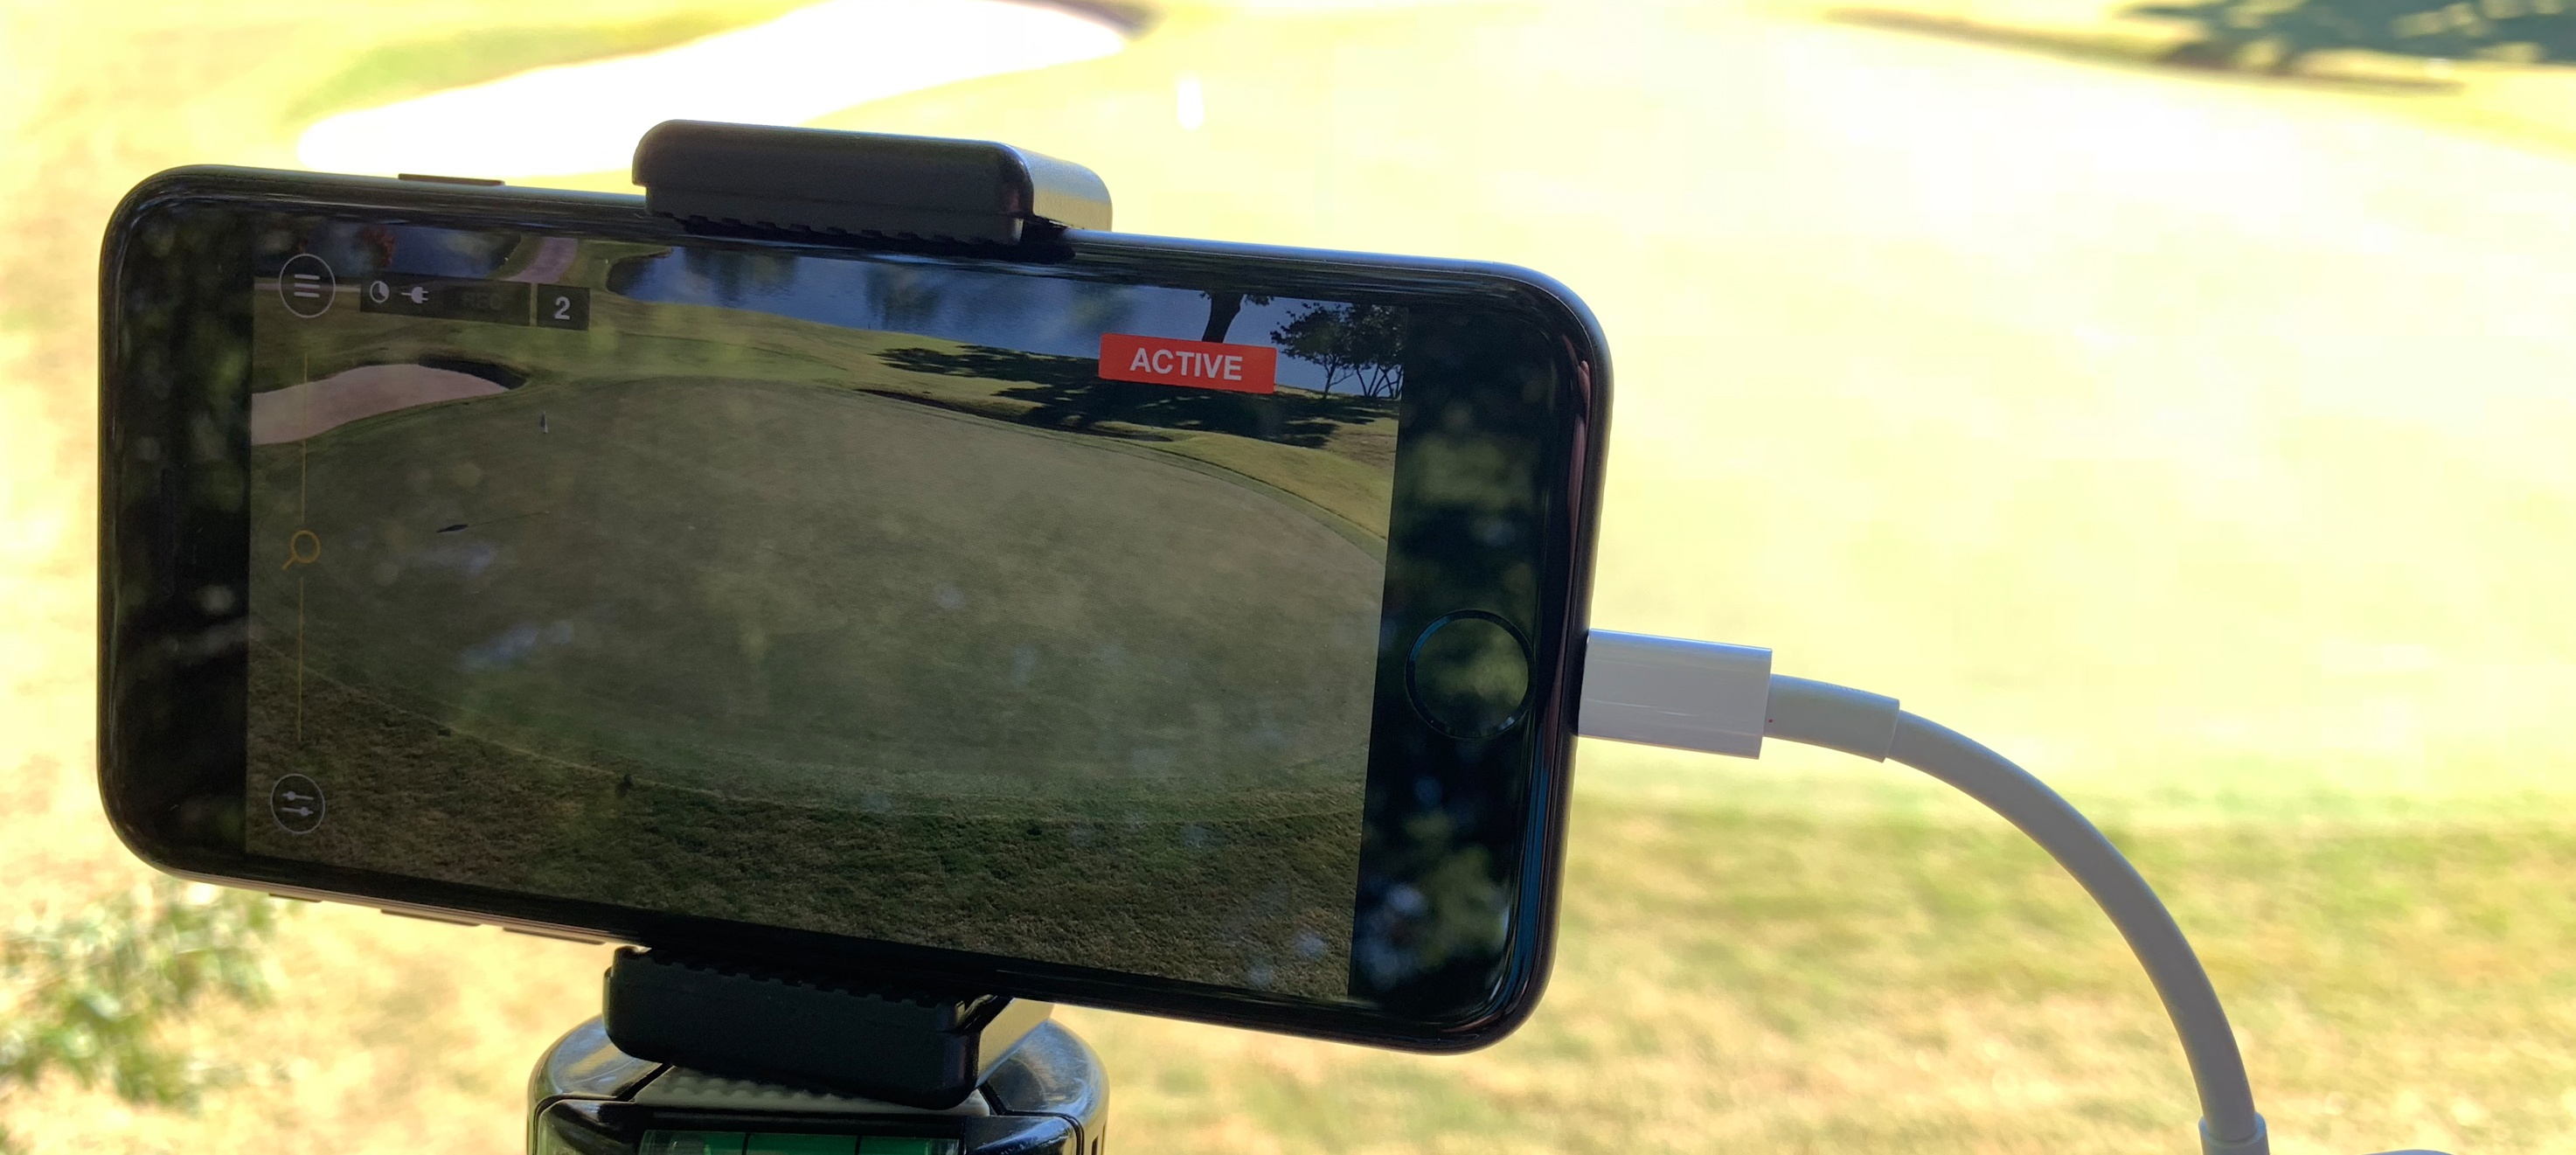 iPhone Camera on the Golf Course